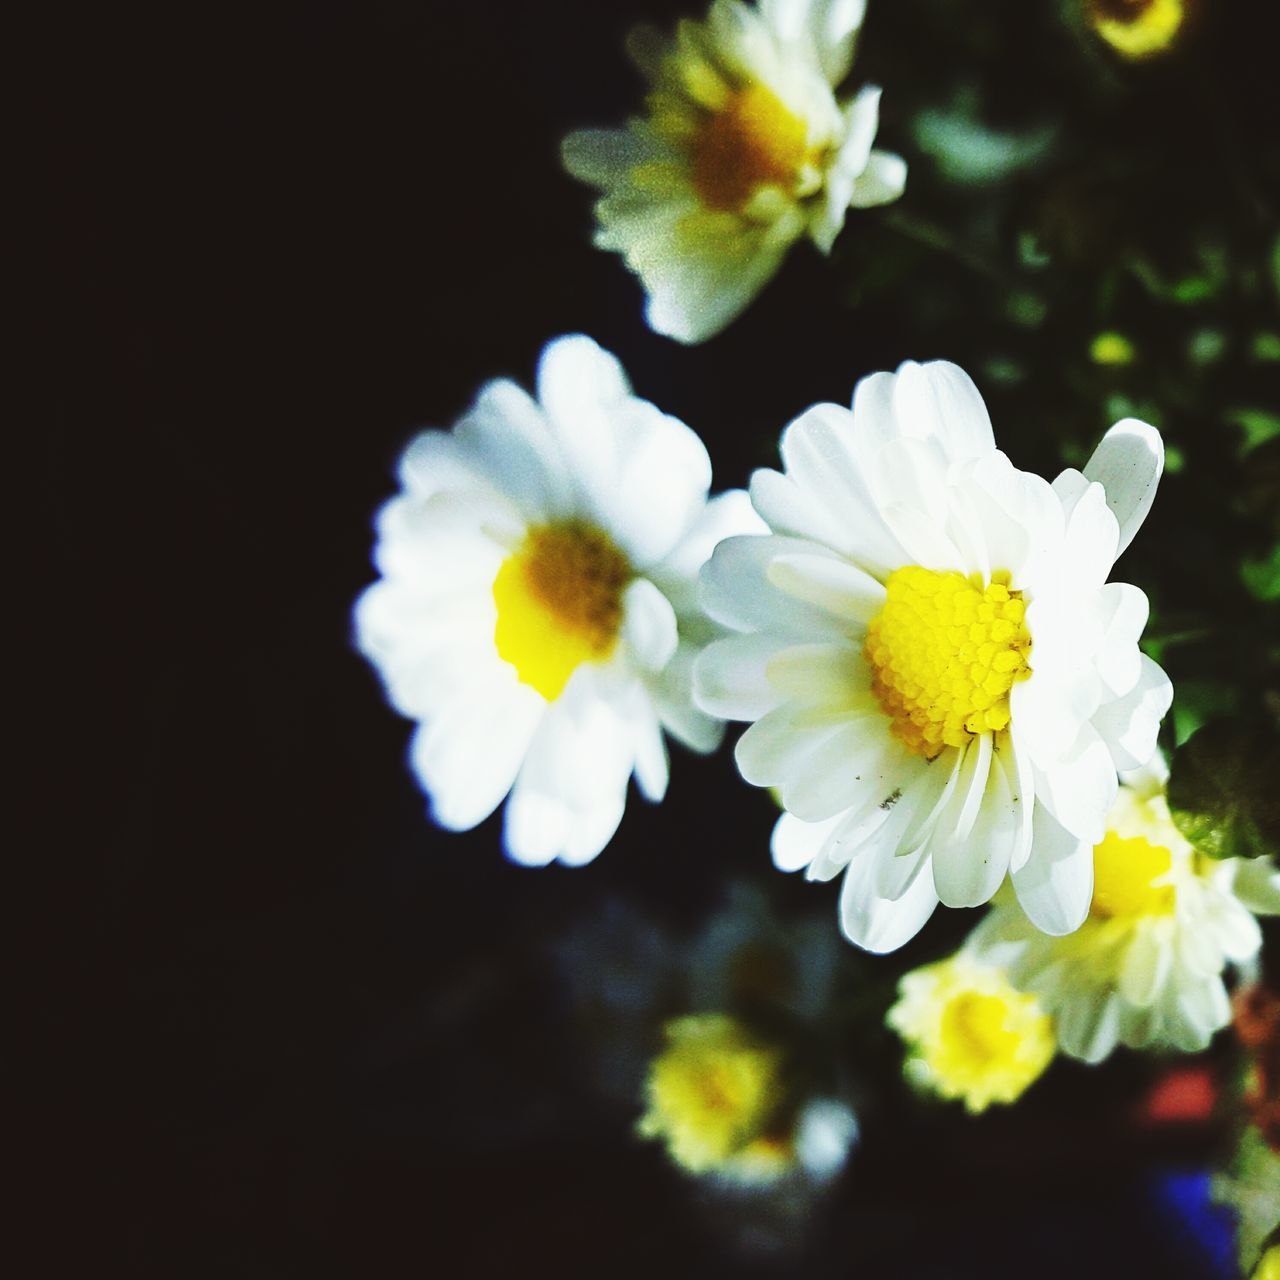 flower, yellow, petal, nature, beauty in nature, flower head, freshness, growth, fragility, blooming, plant, no people, close-up, outdoors, day